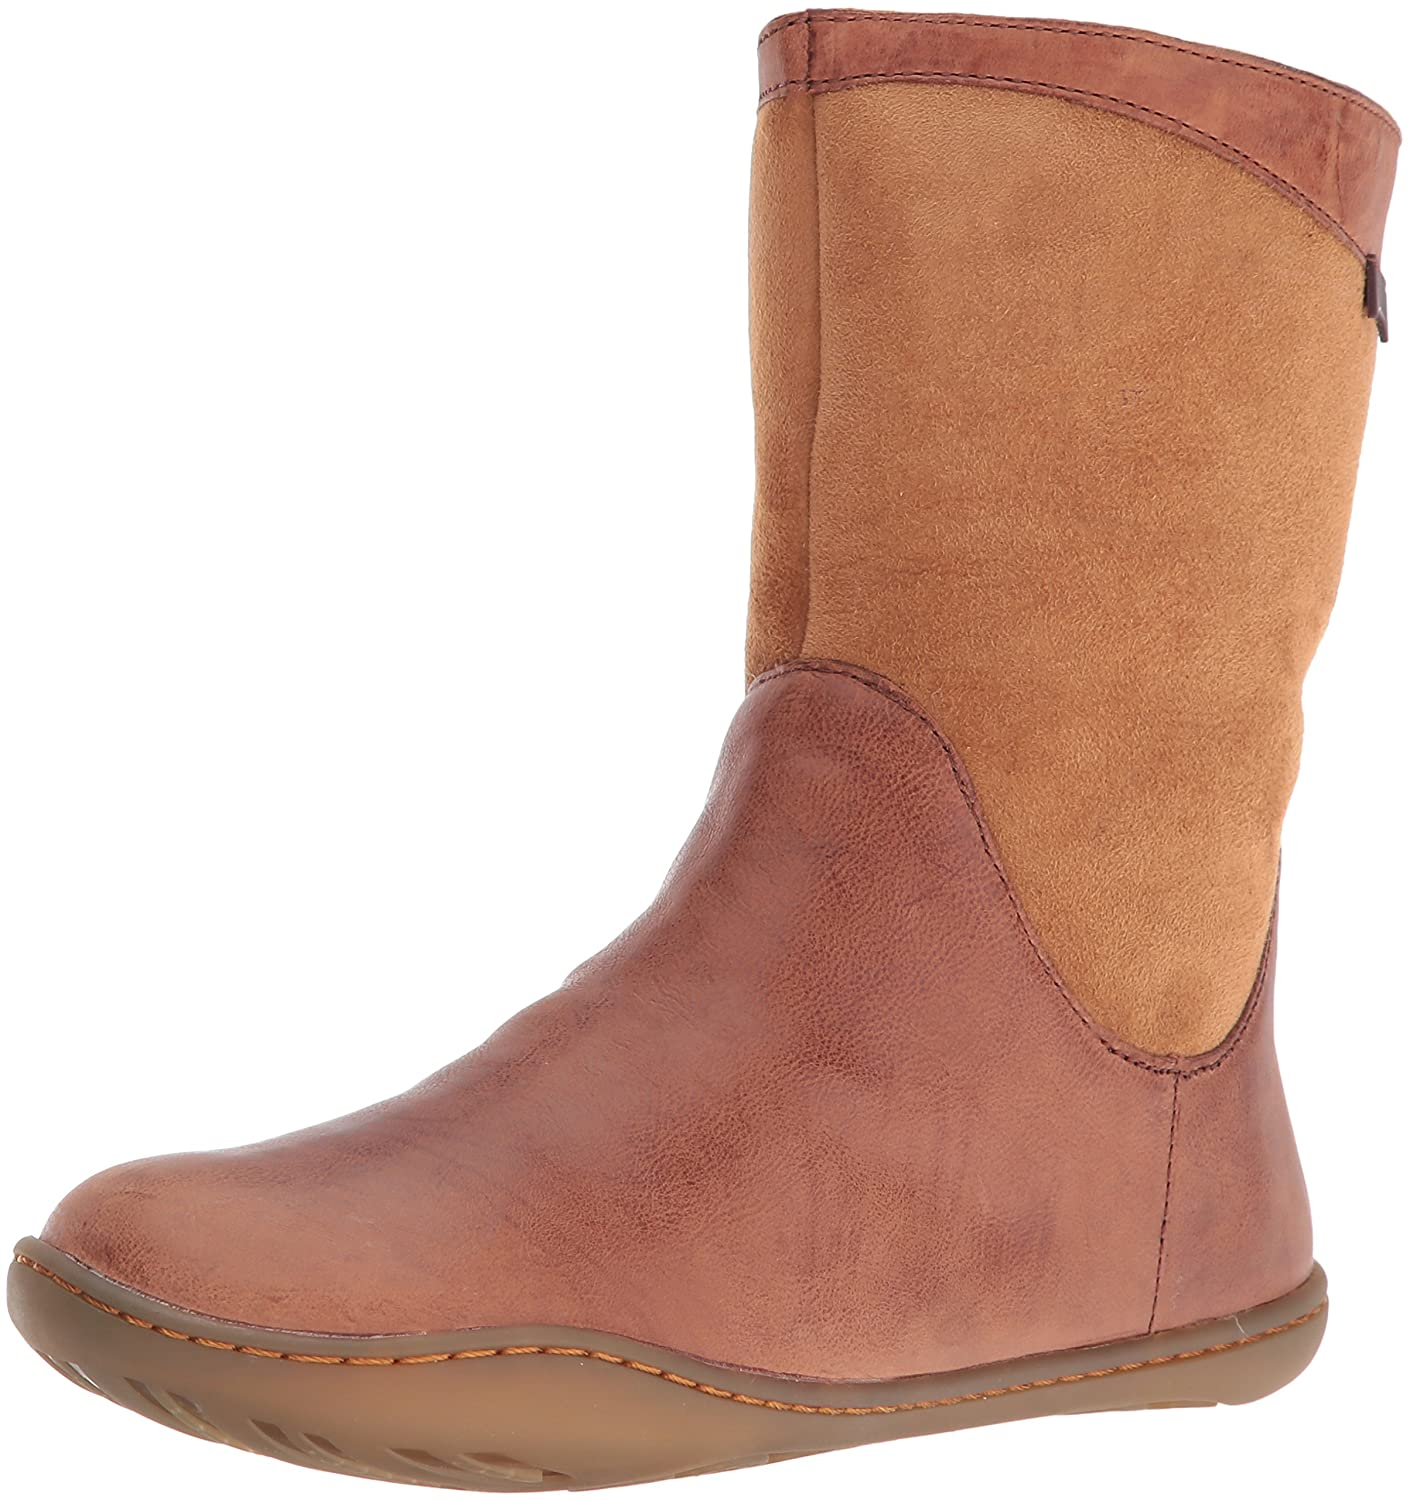 Camper Women's Peu Cami Boot B01B2EX7RA 40 M EU / 10 B(M) US|Brown